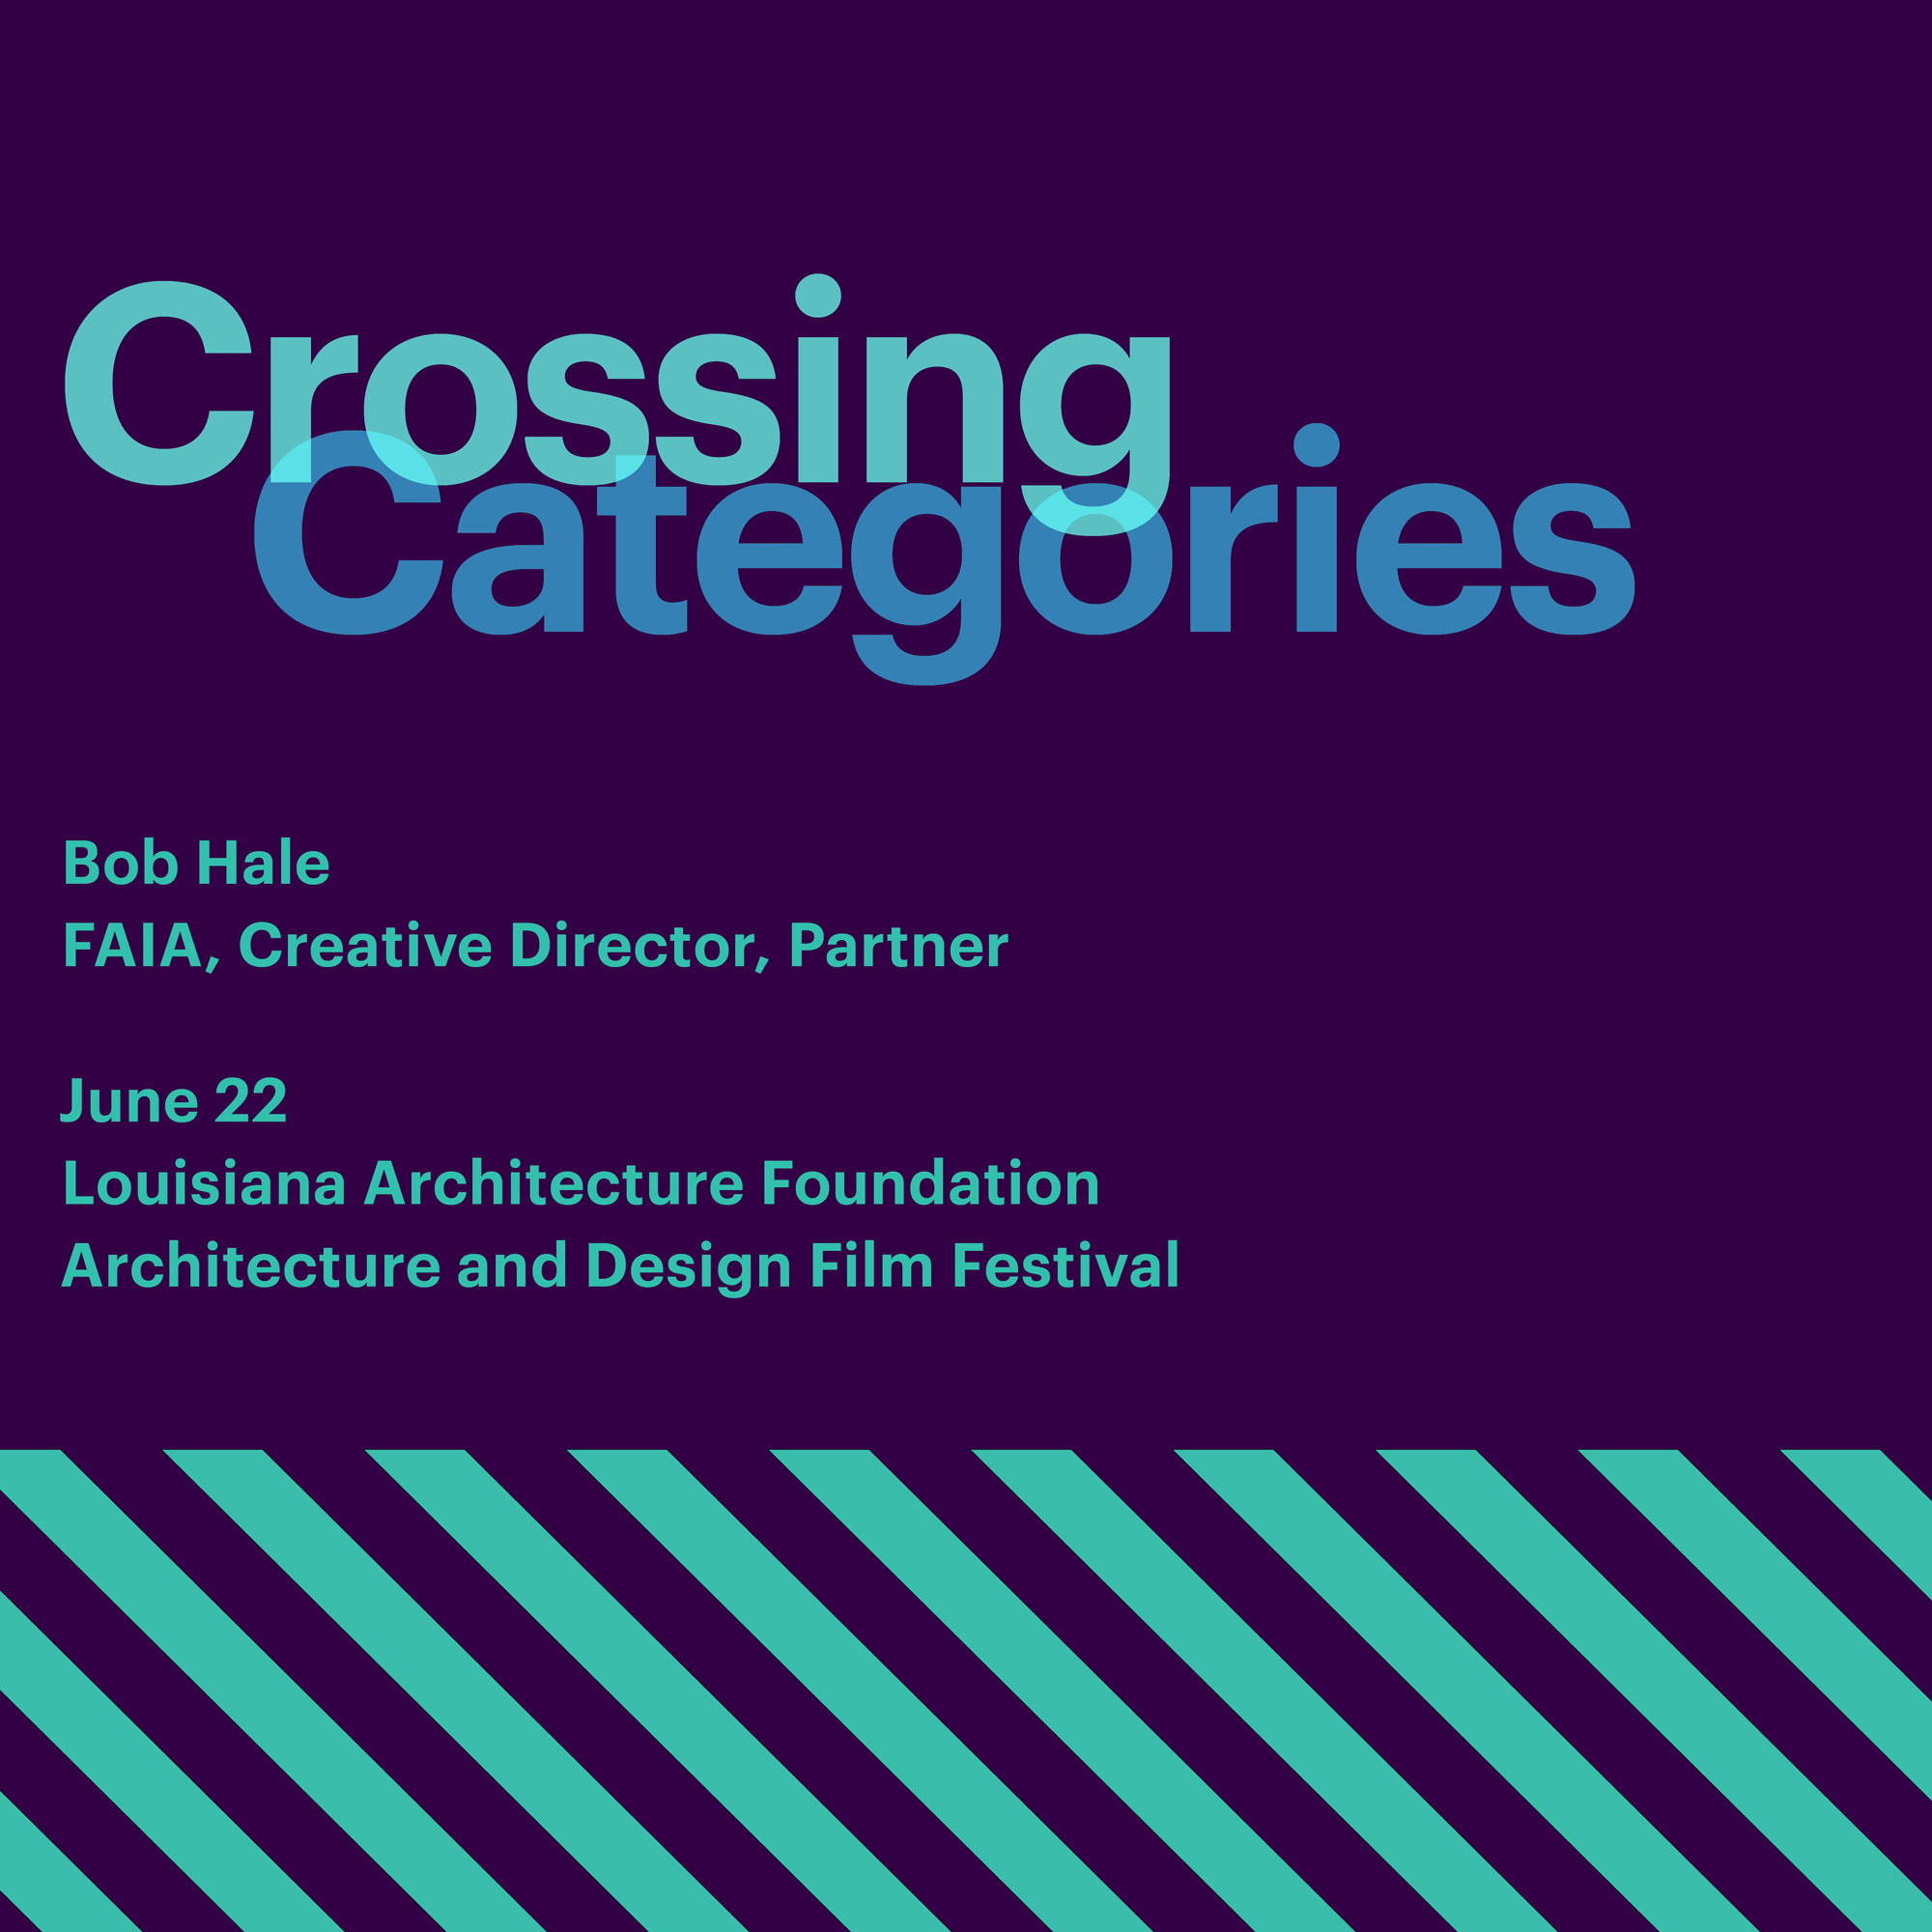 crossing categories event graphic